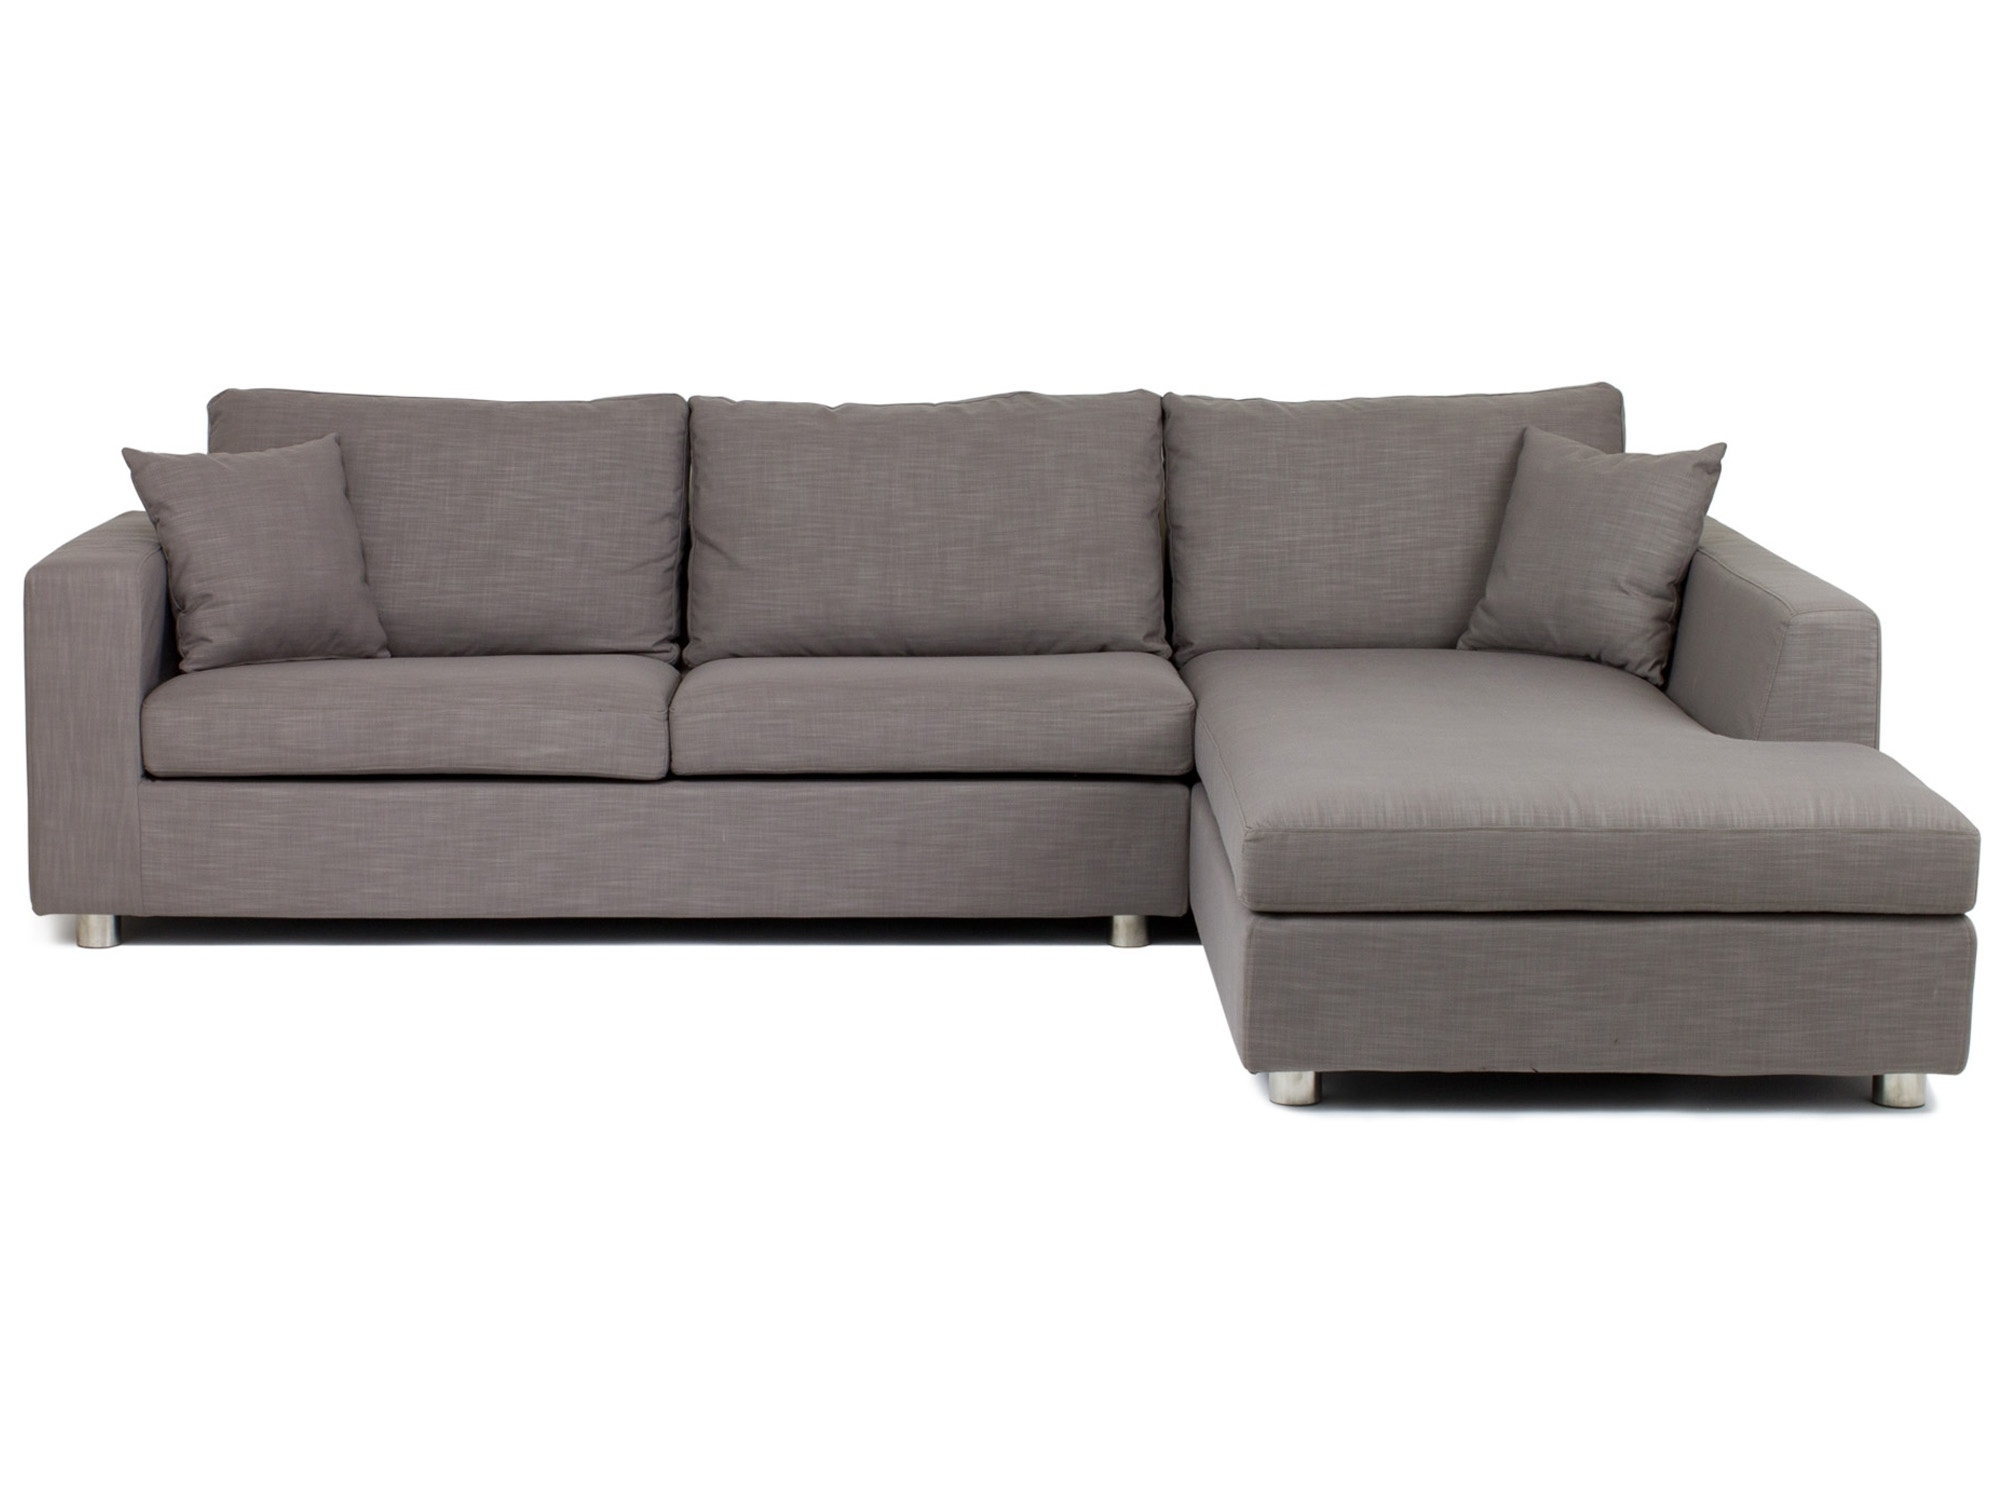 Newest Elegant Chaise Longue Sofa Beds 63 About Remodel Verona Sofa Bed Pertaining To Sofa Beds With Chaise Lounge (View 7 of 15)